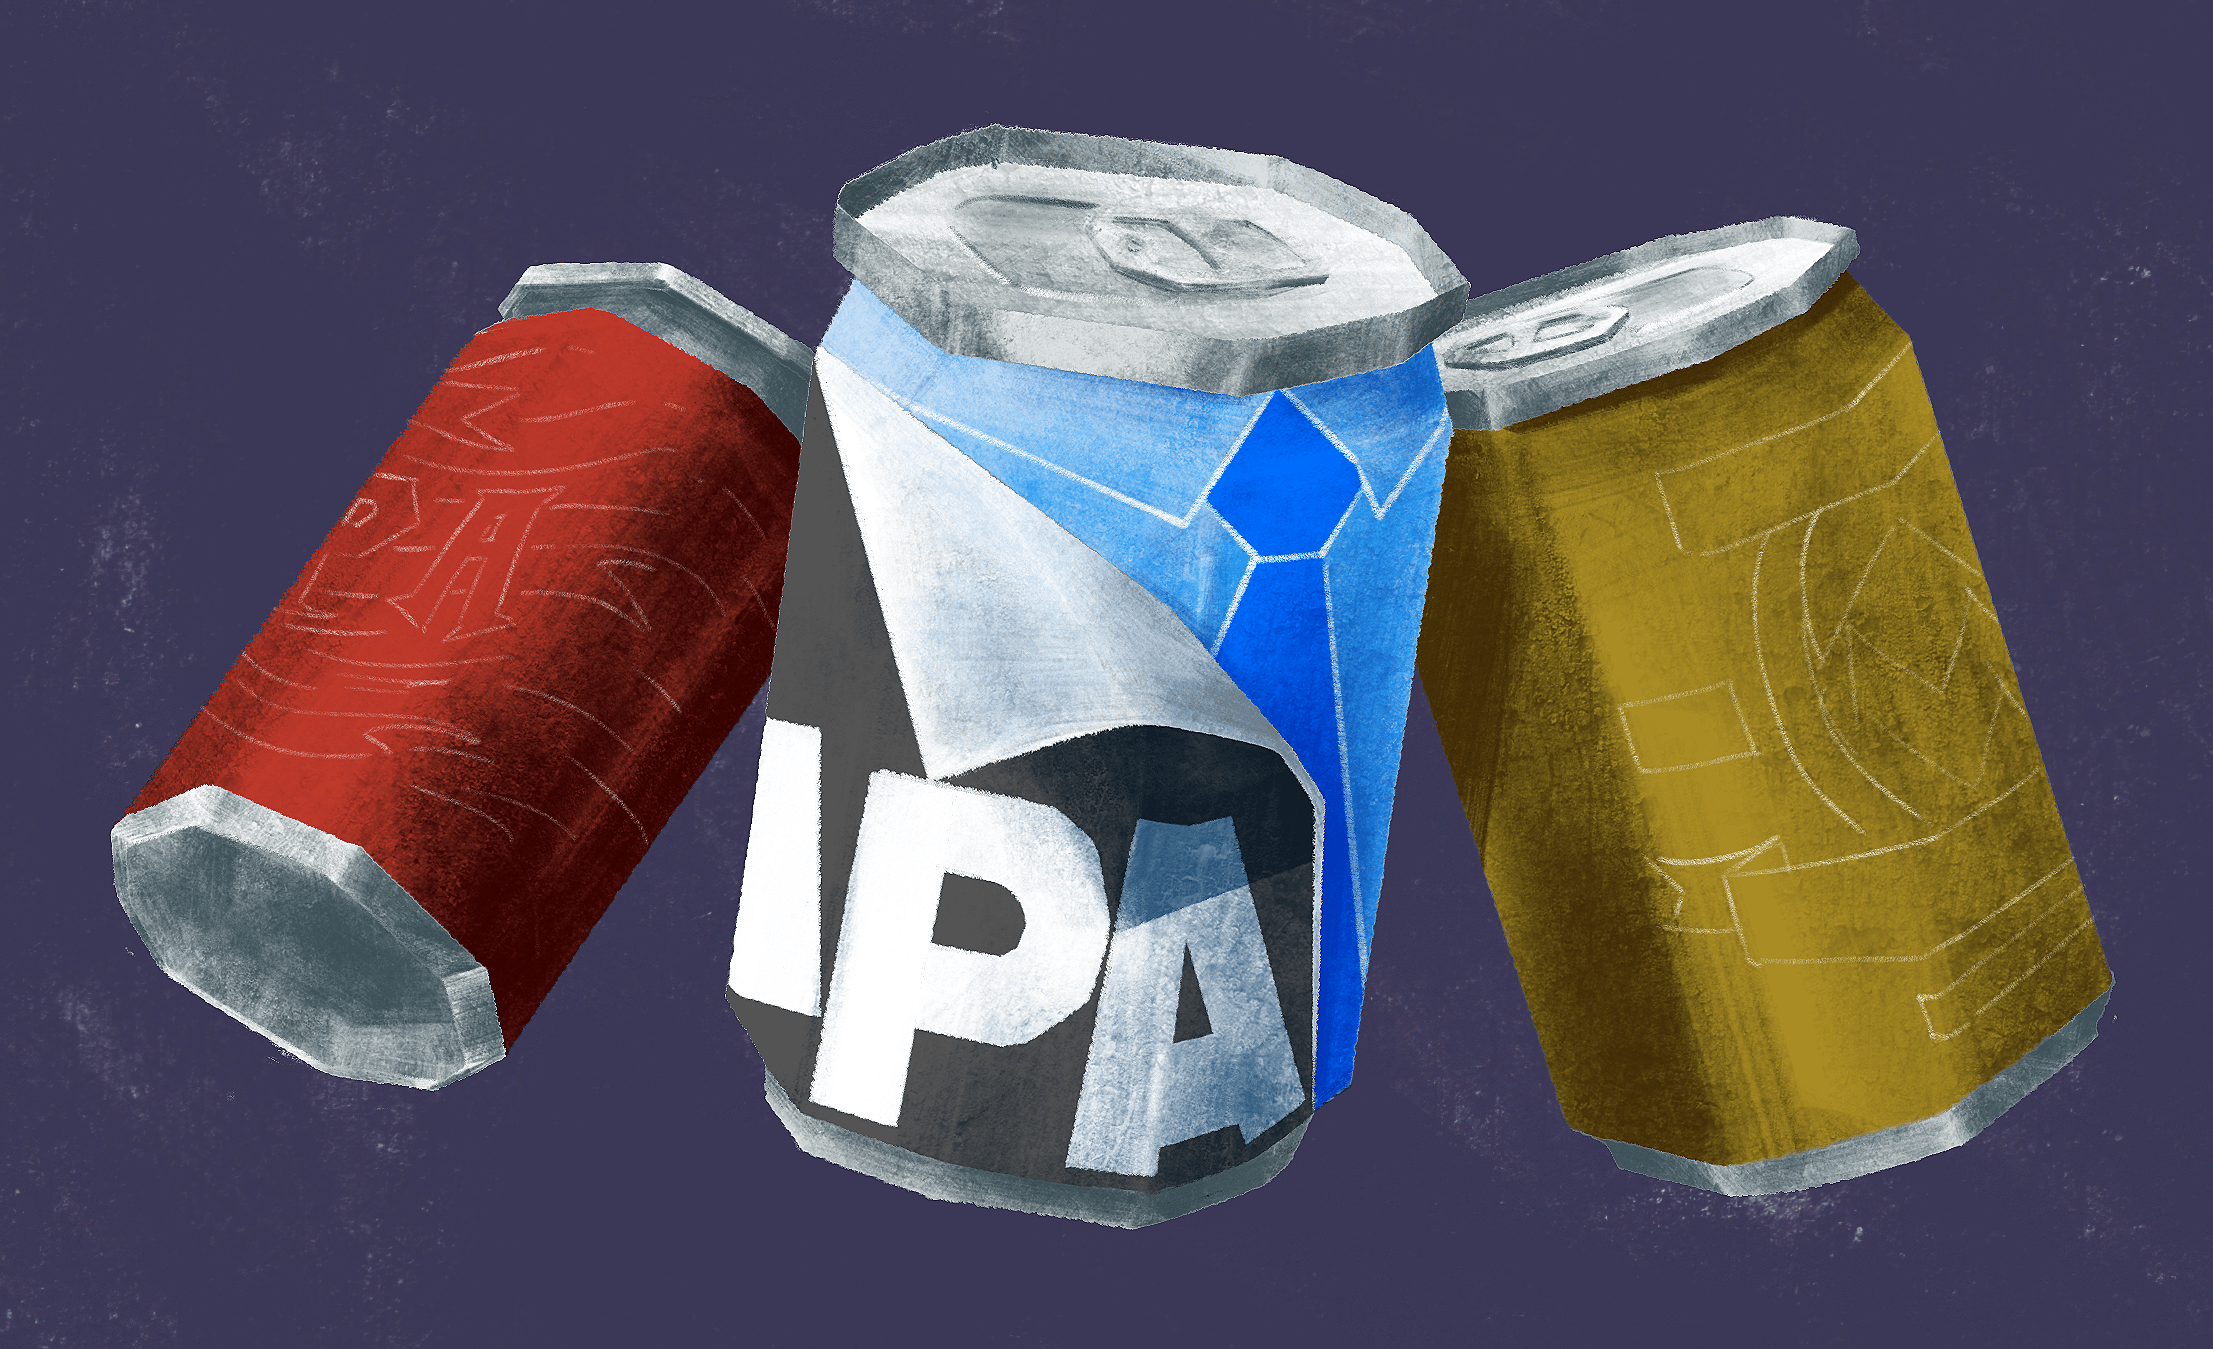 Speak Daggers, Use None – Hypocrisy and Authenticity in Today's Beer World